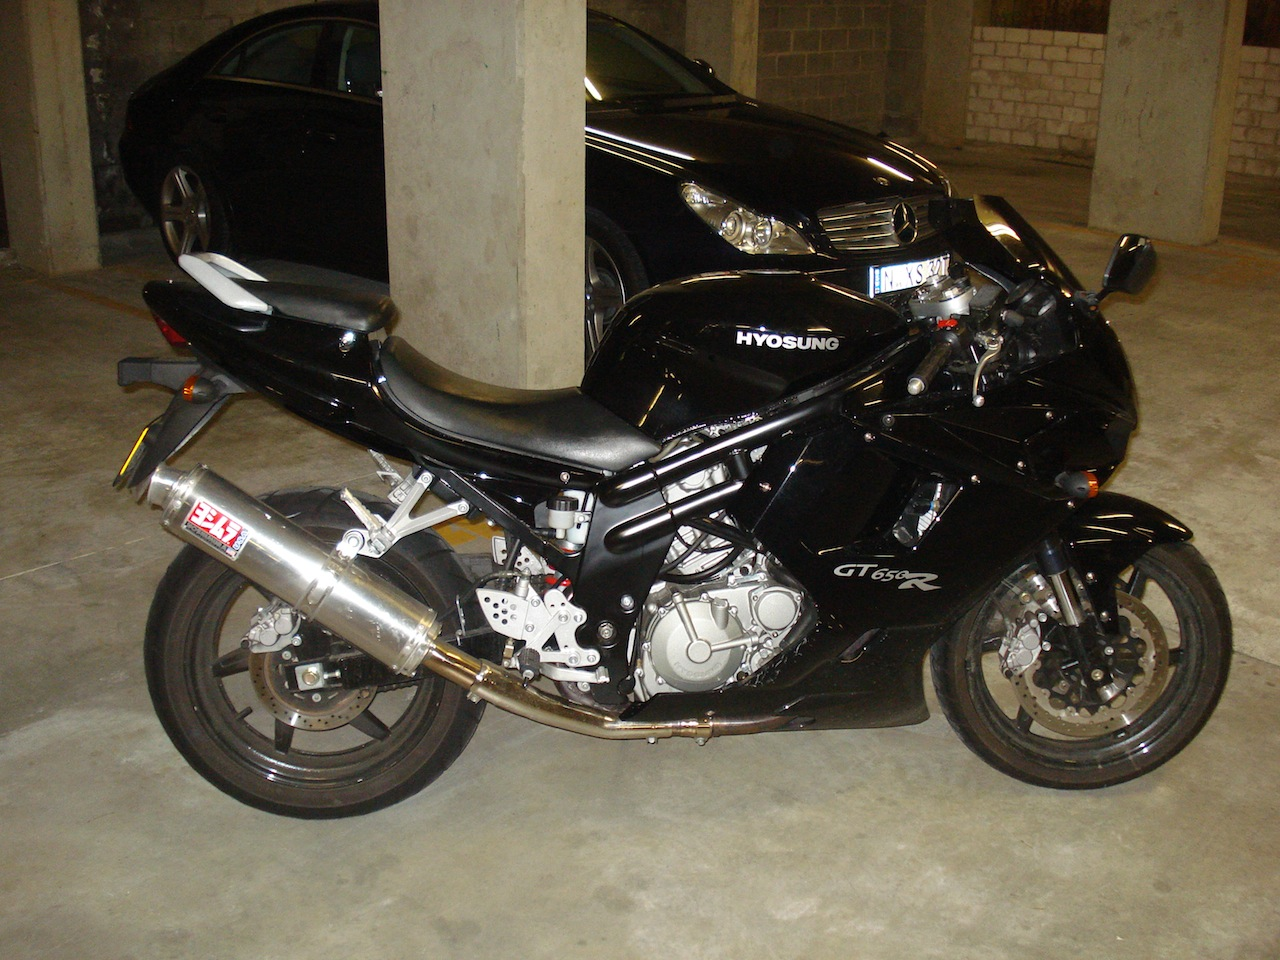 hyosung gtr comet 650 buy and sell cars motorbikes pyrmont. Black Bedroom Furniture Sets. Home Design Ideas